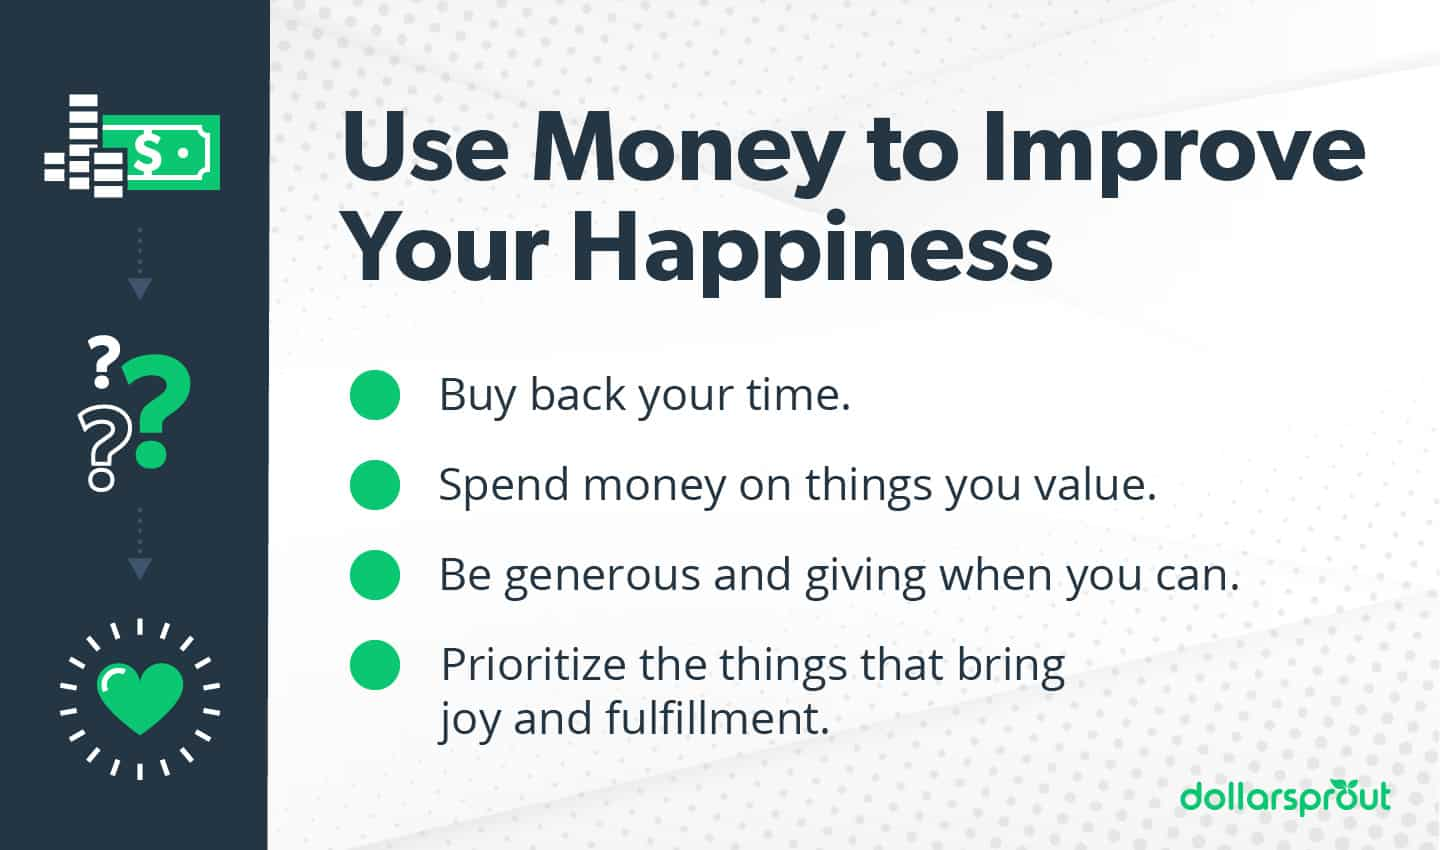 use money to improve happiness